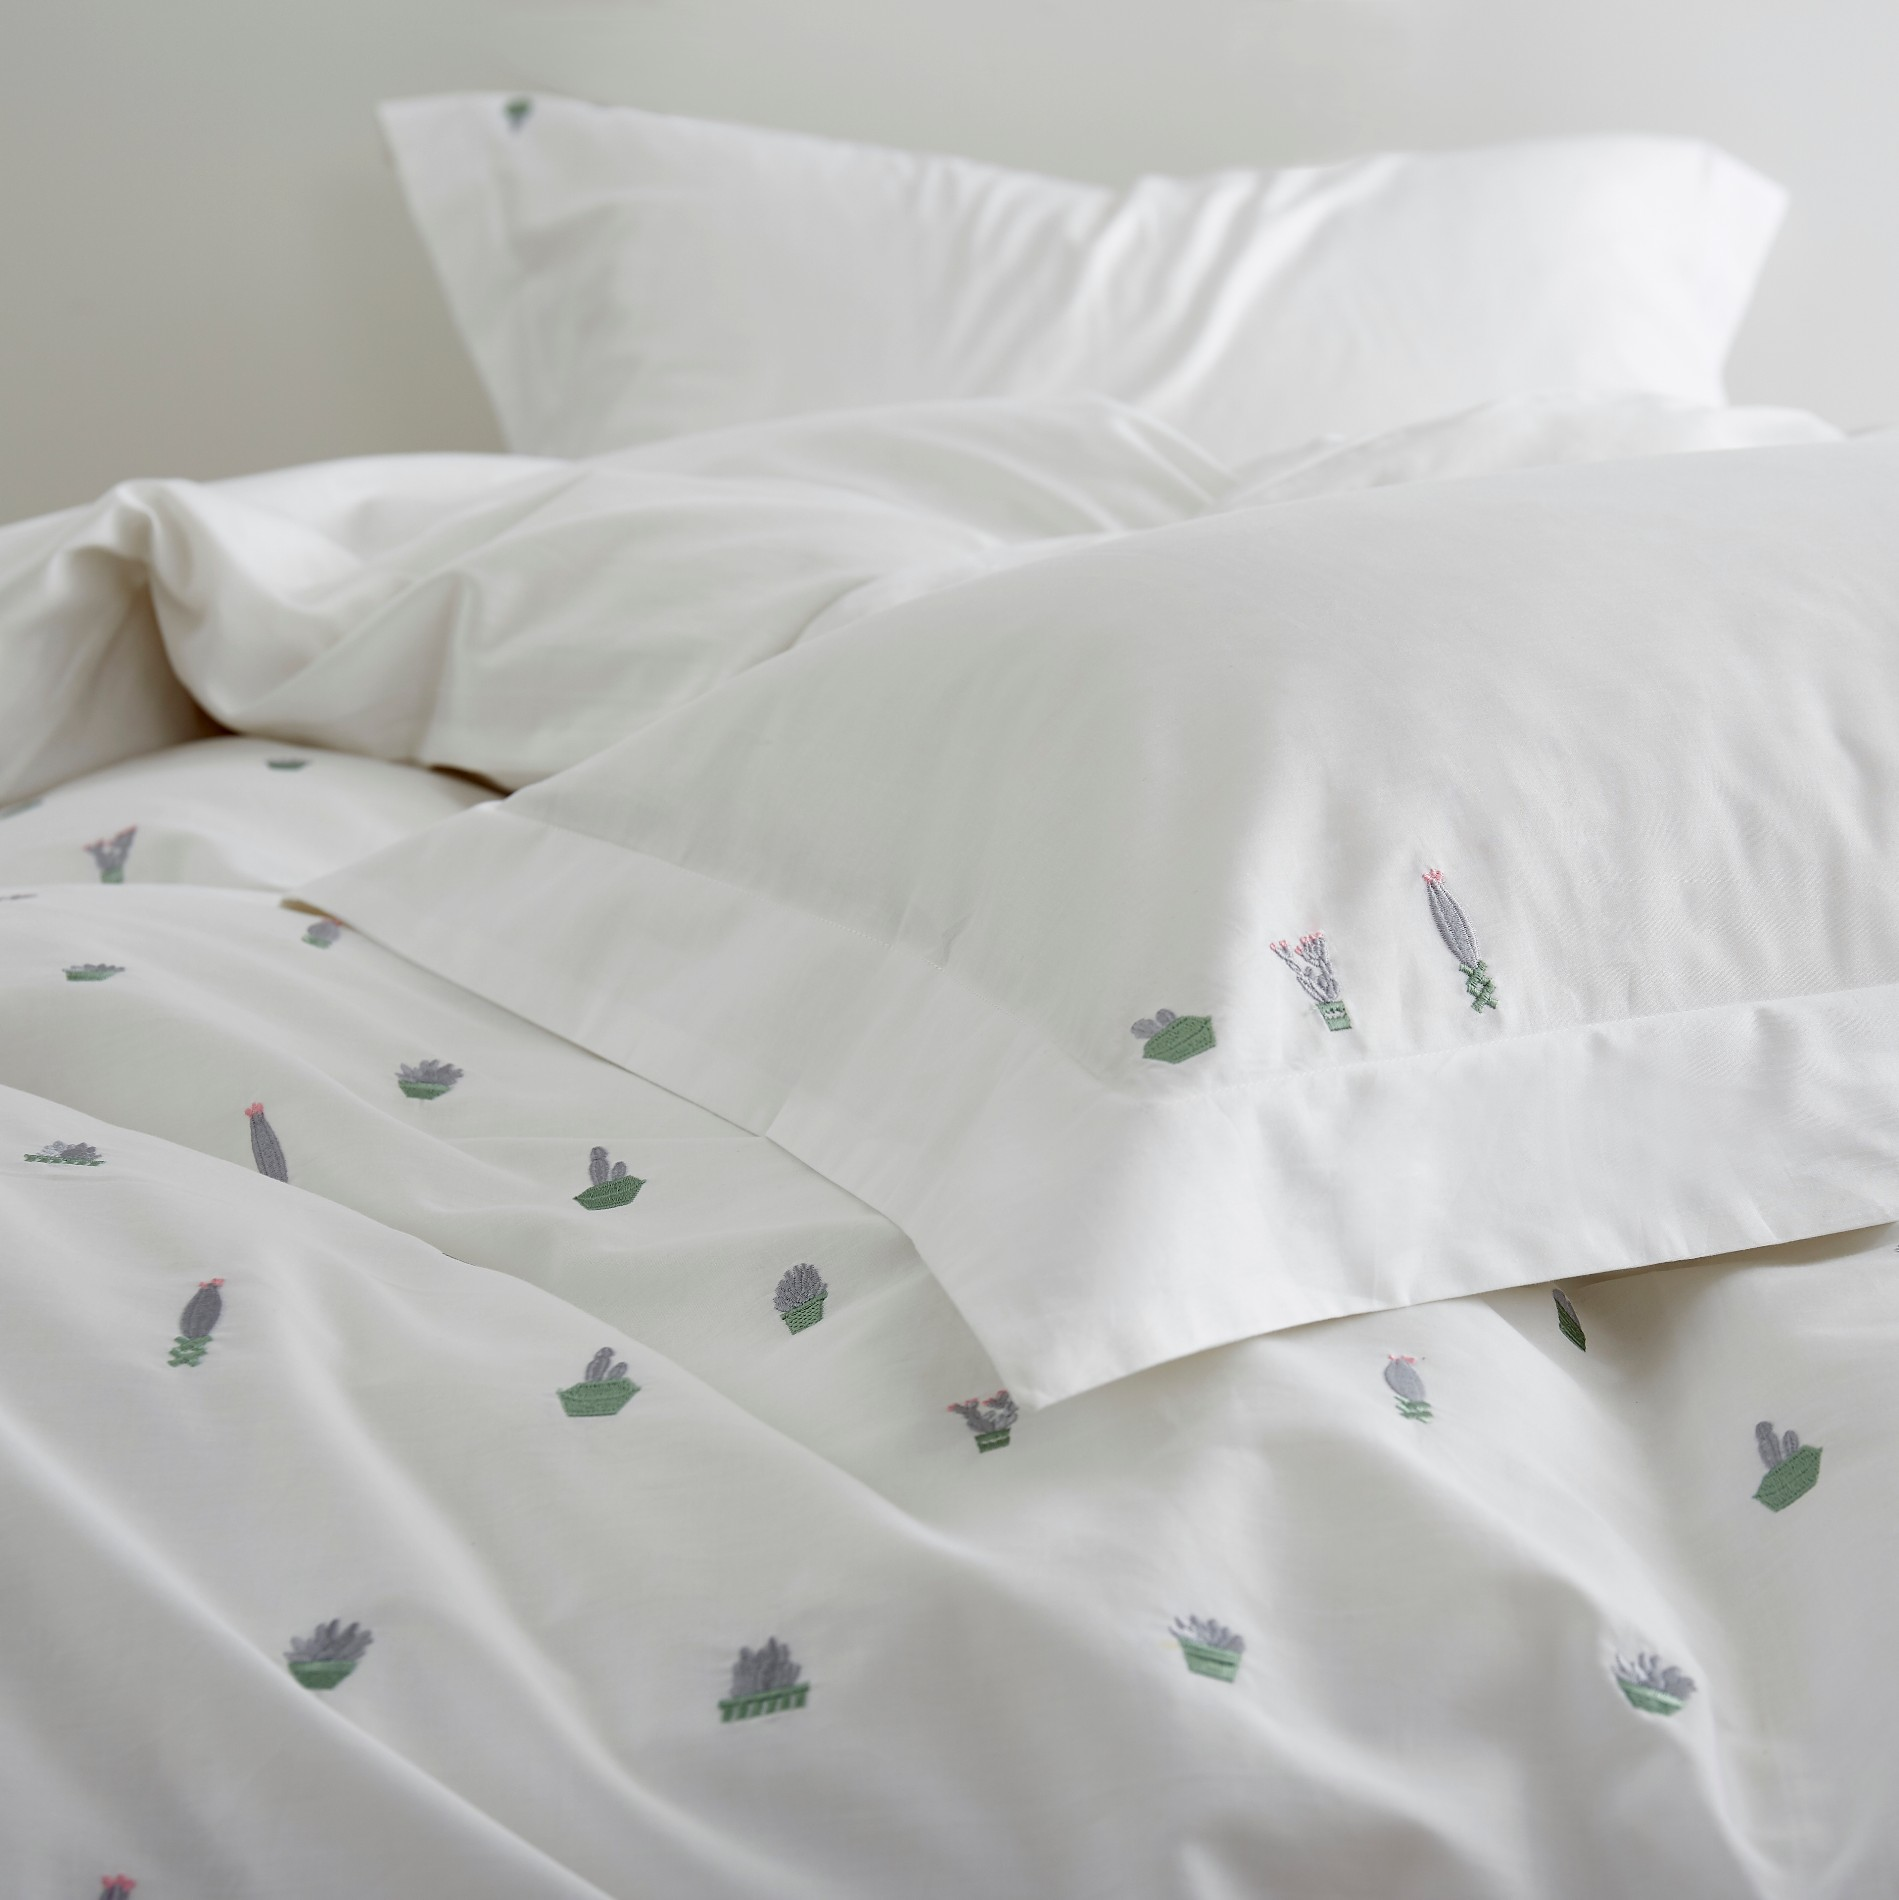 White Duvet Cover Set Manufacturers, White Duvet Cover Set Factory, Supply White Duvet Cover Set